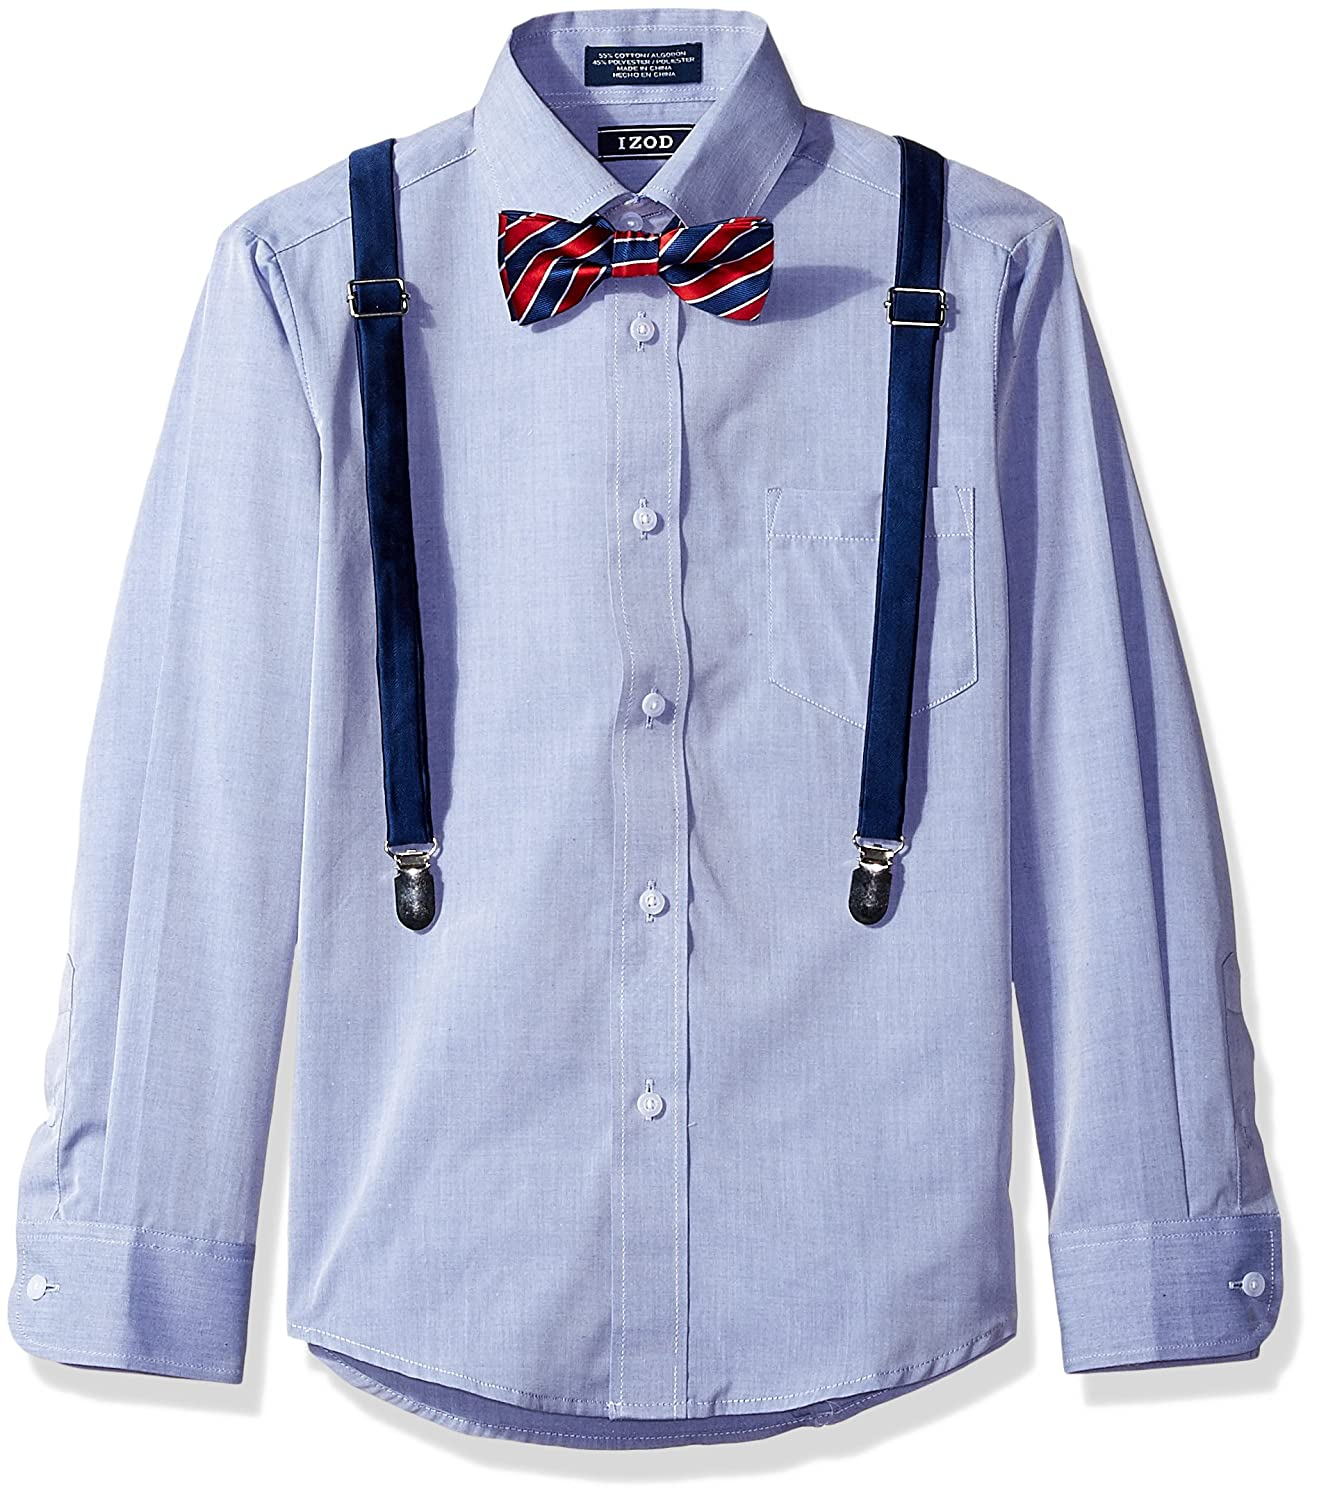 Vintage Style Children's Clothing: Girls, Boys, Baby, Toddler Izod Kids Big Boys Long Sleeve Fancy Chambray Shirt with Bow Tie and Suspender Set $25.83 AT vintagedancer.com